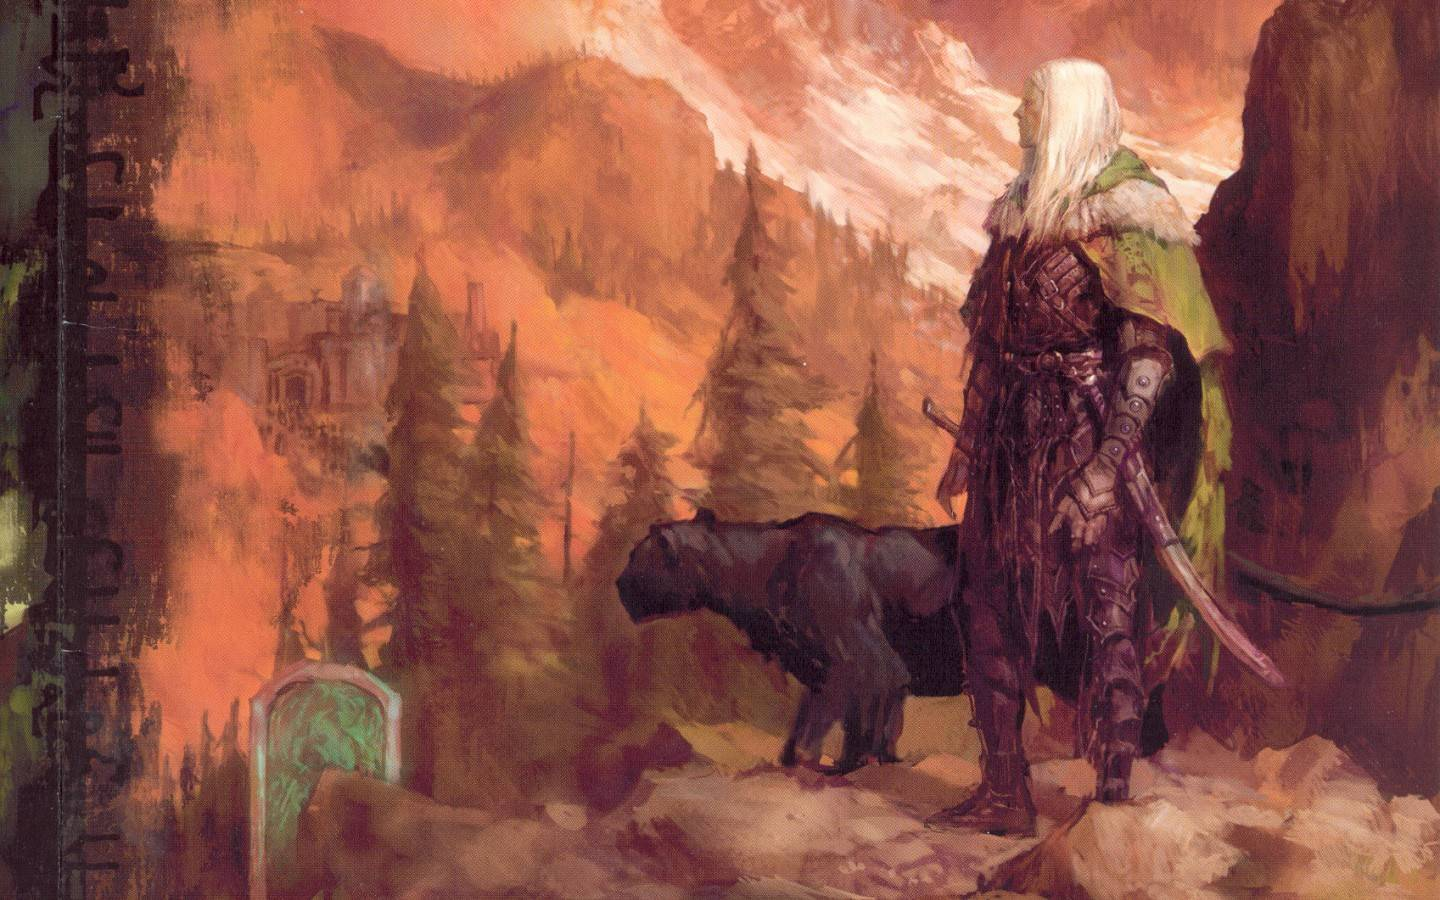 Drizzt Wallpapers